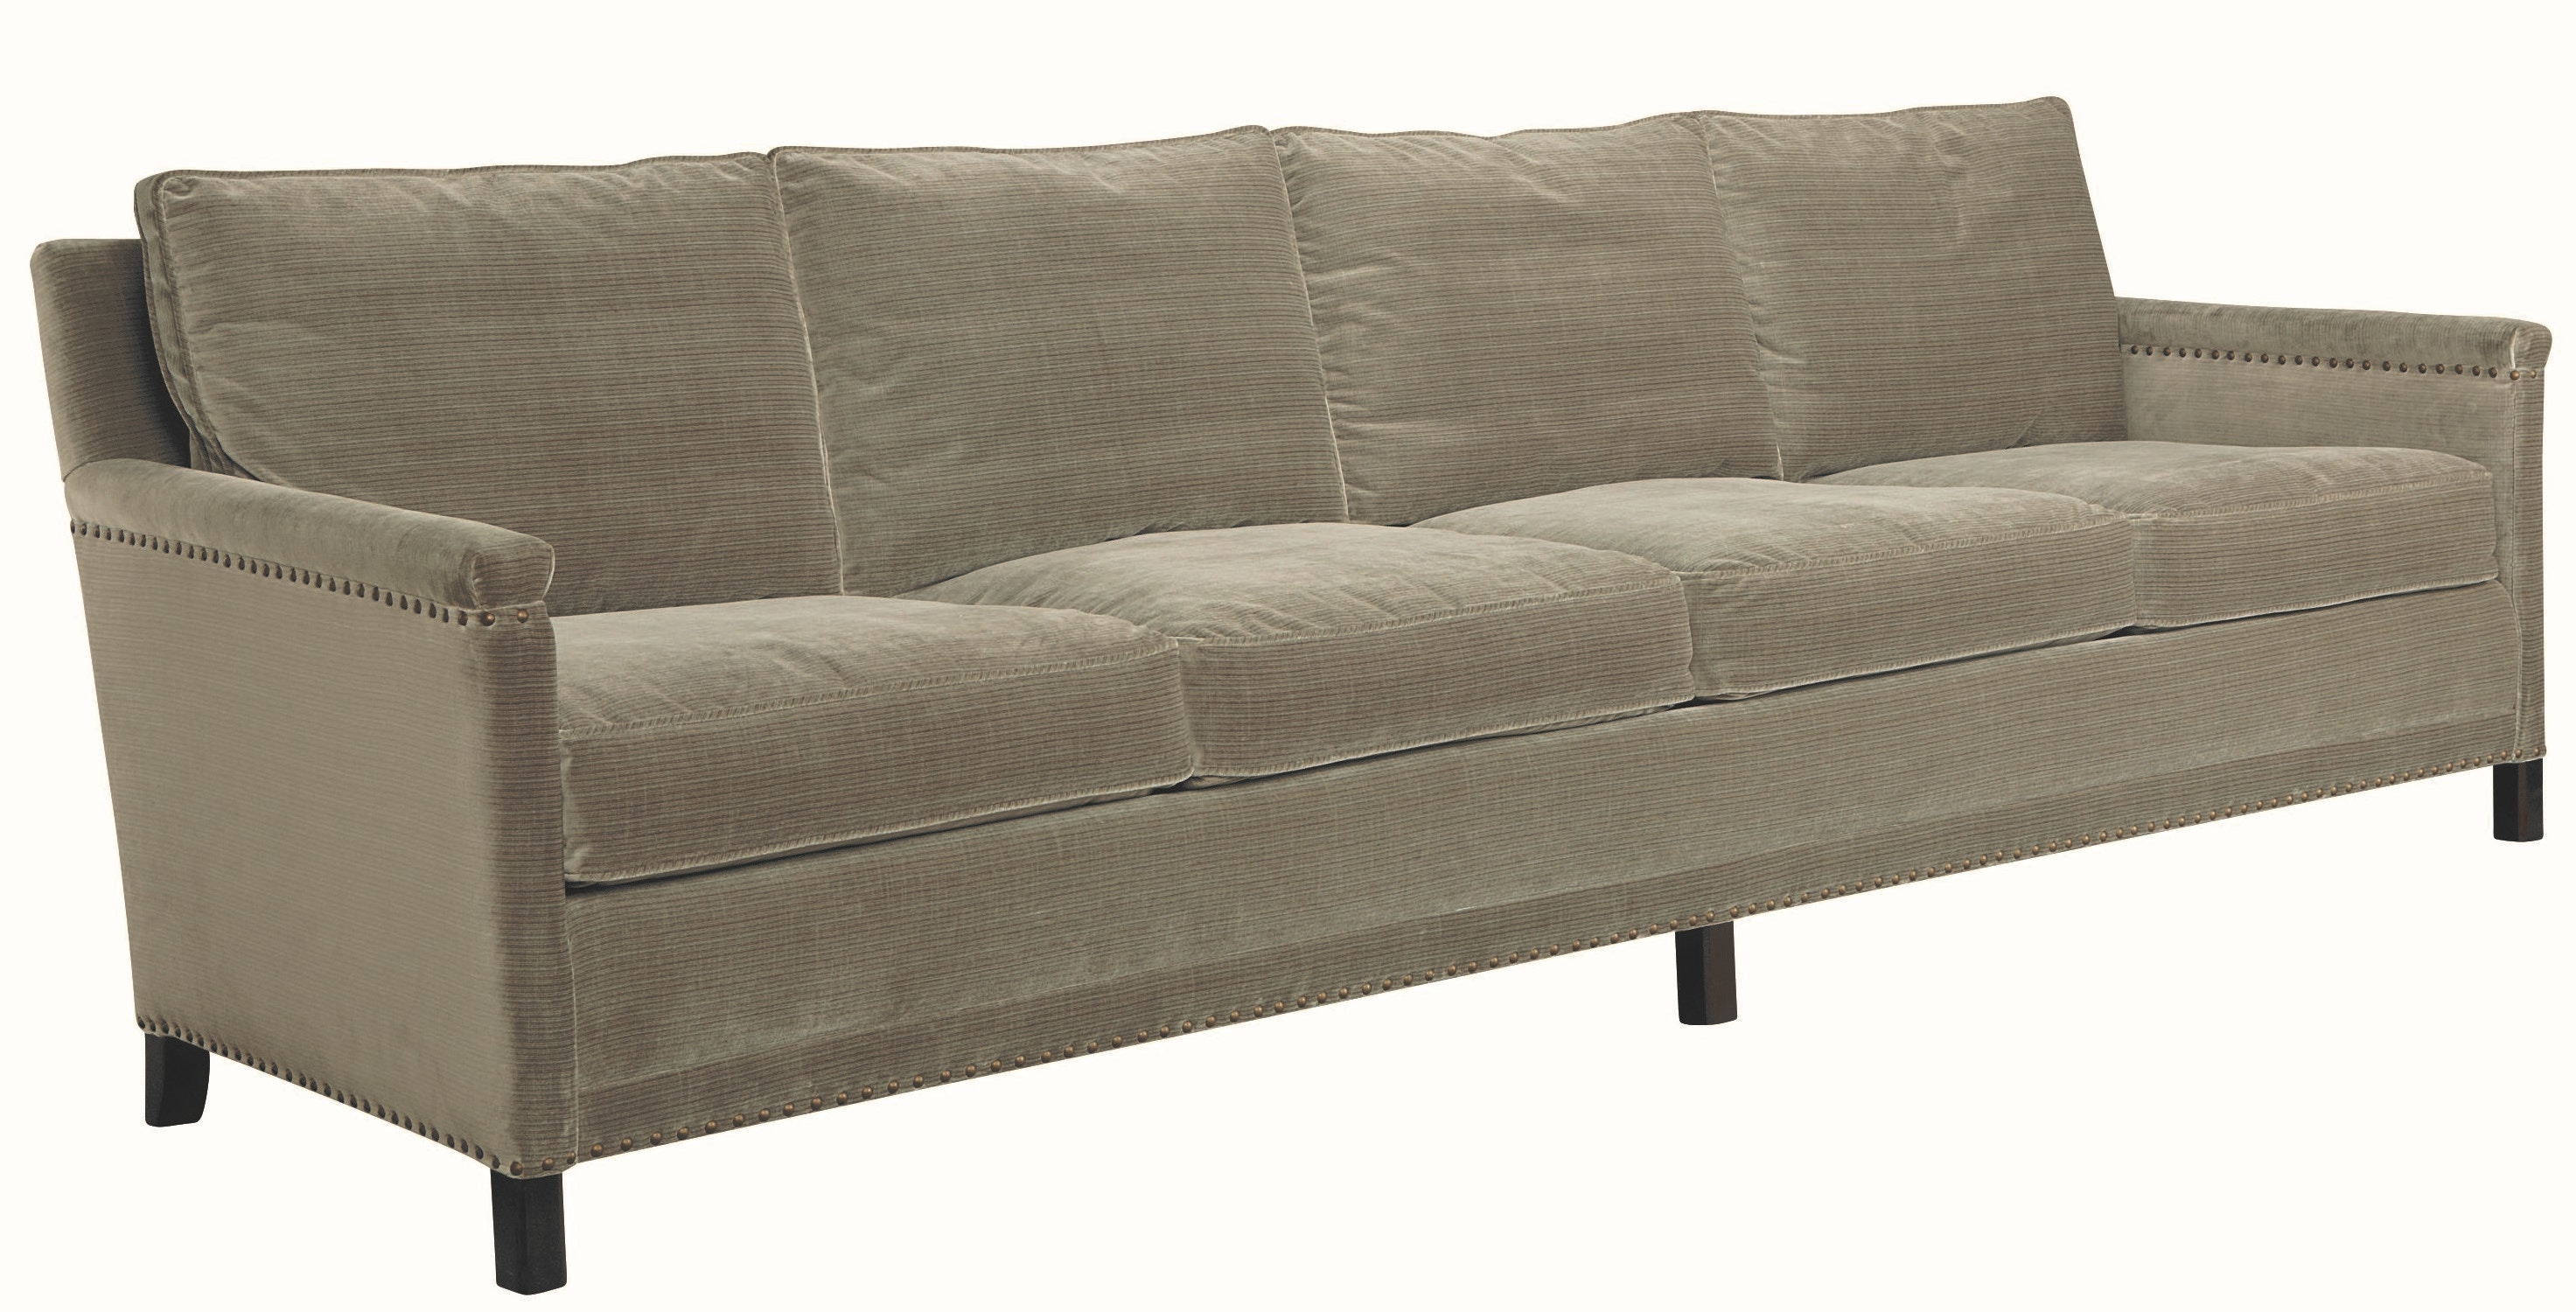 Lee Industries Extra Long Sofa 1935 44